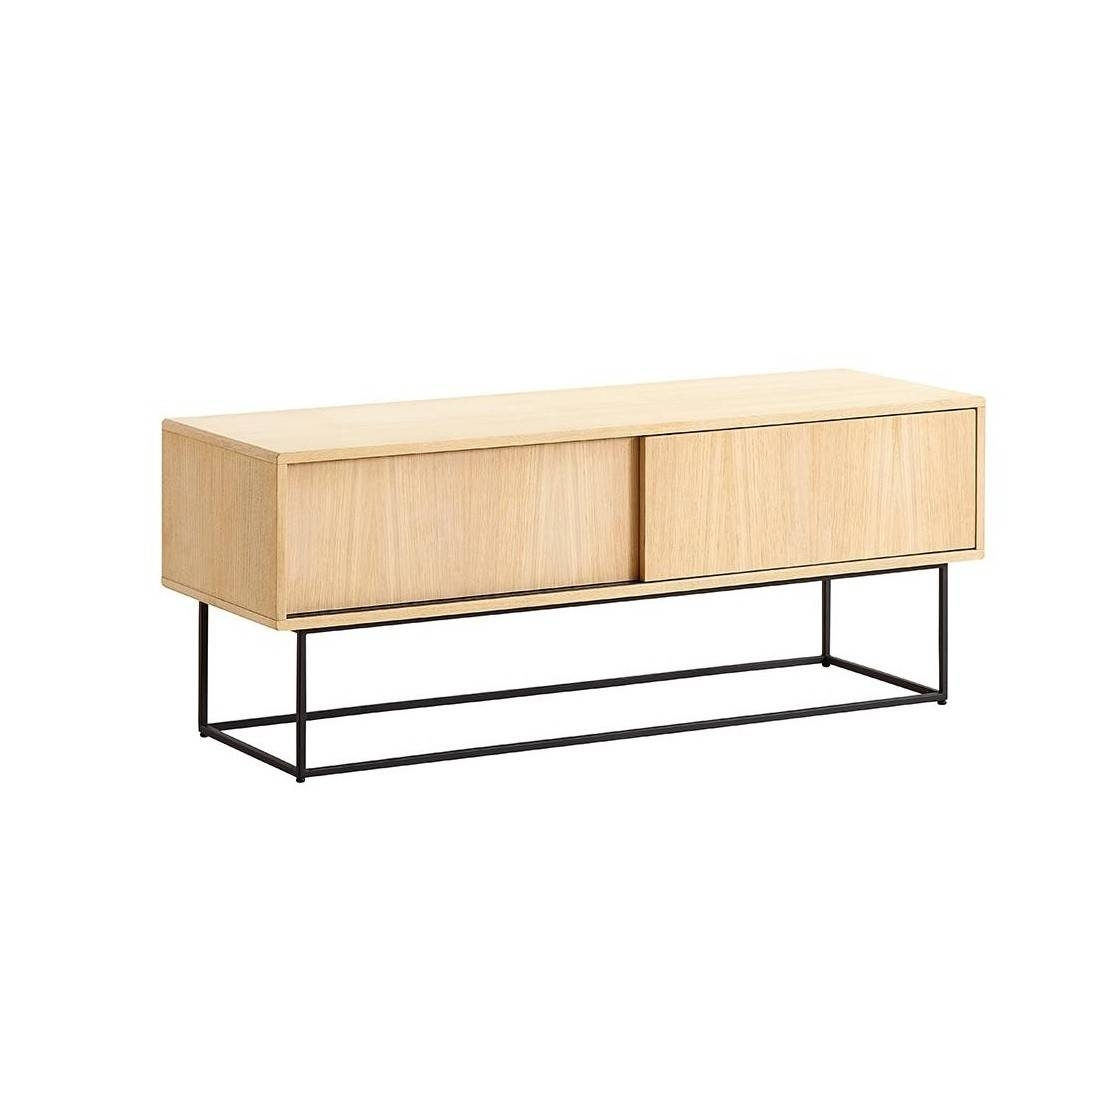 Virka Low Sideboard | Woud | Ambientedirect In Most Up To Date Small Low Sideboards (#15 of 15)